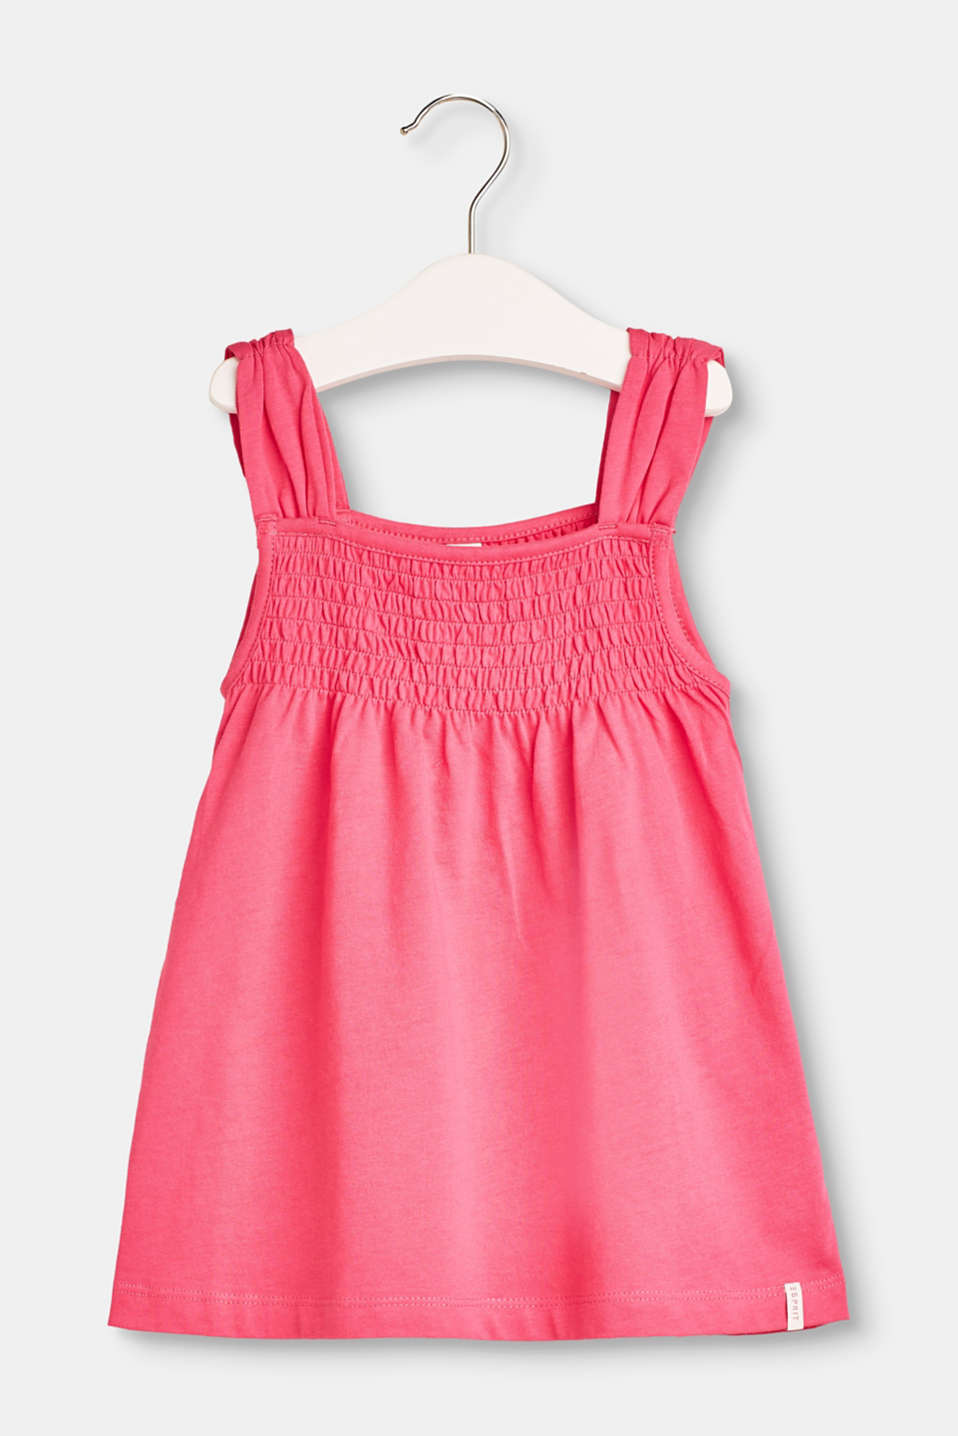 Esprit - Smocked A-line lace top in 100% cotton